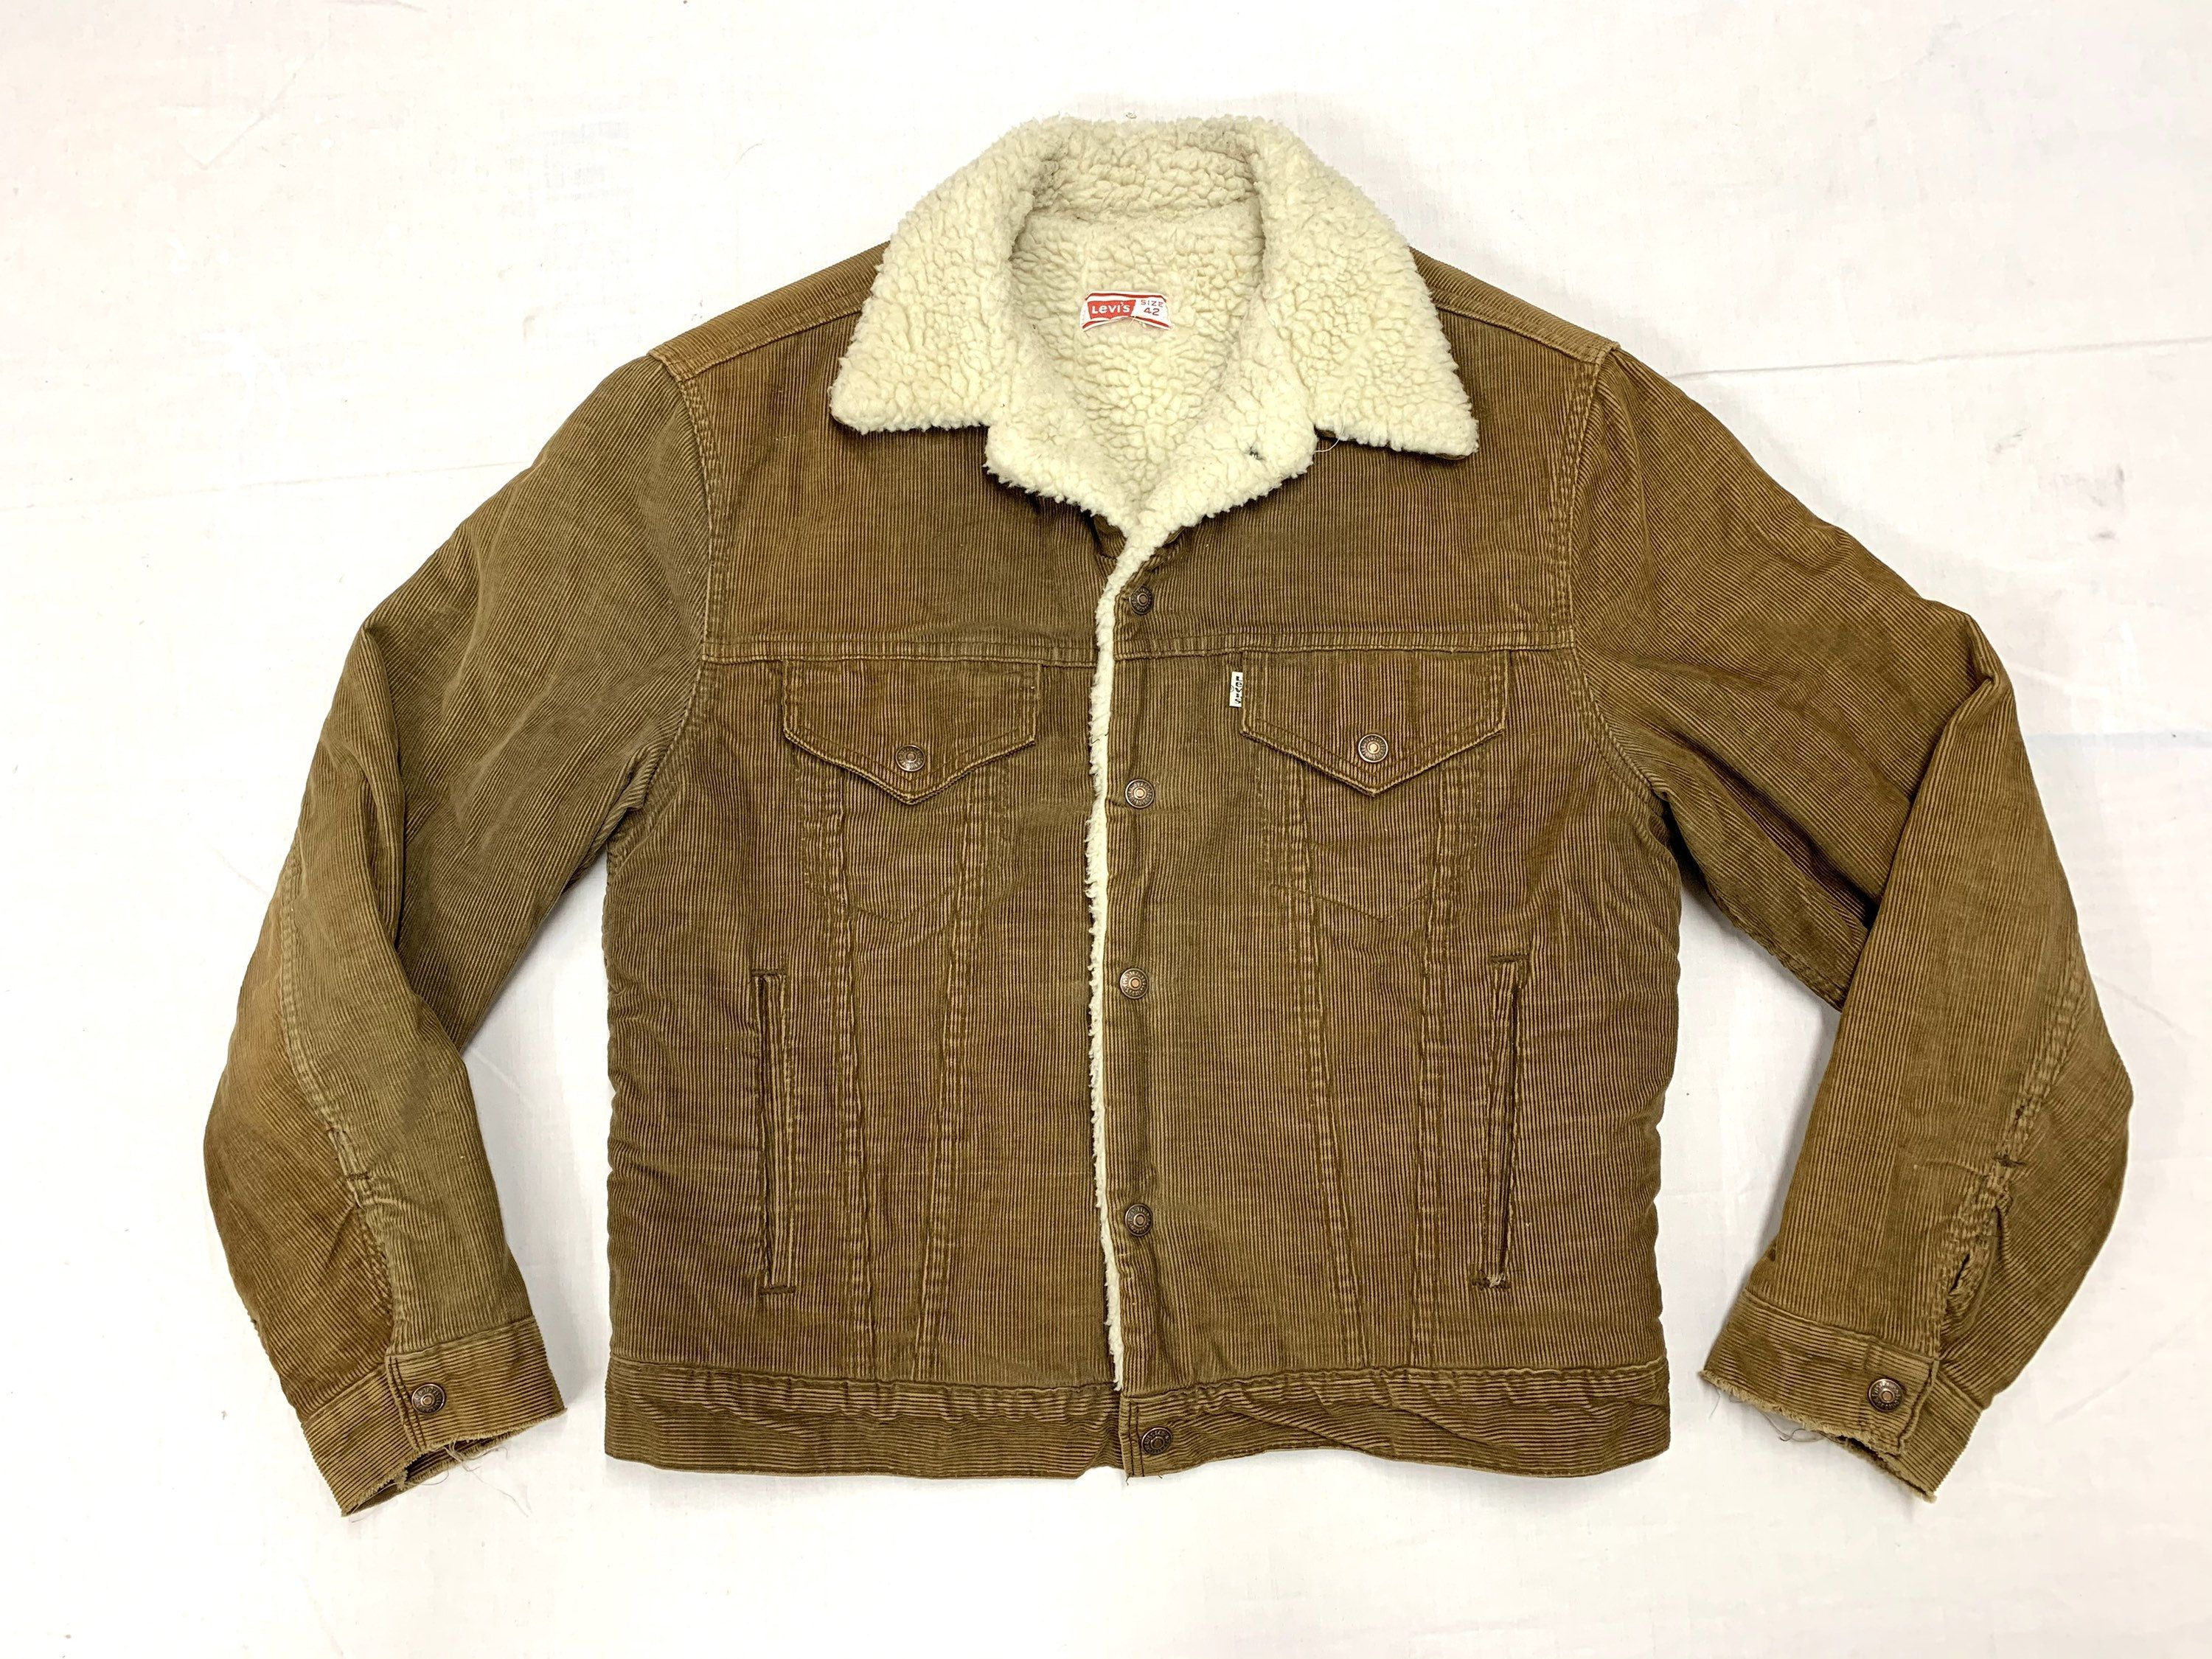 1980s Levis Fleece Lined Brown Corduroy Jean Jacket Size 42 Large 4 Pockets 959 By Sidvintage On Etsy Corduroy Jeans Levi Trending Outfits [ jpg ]